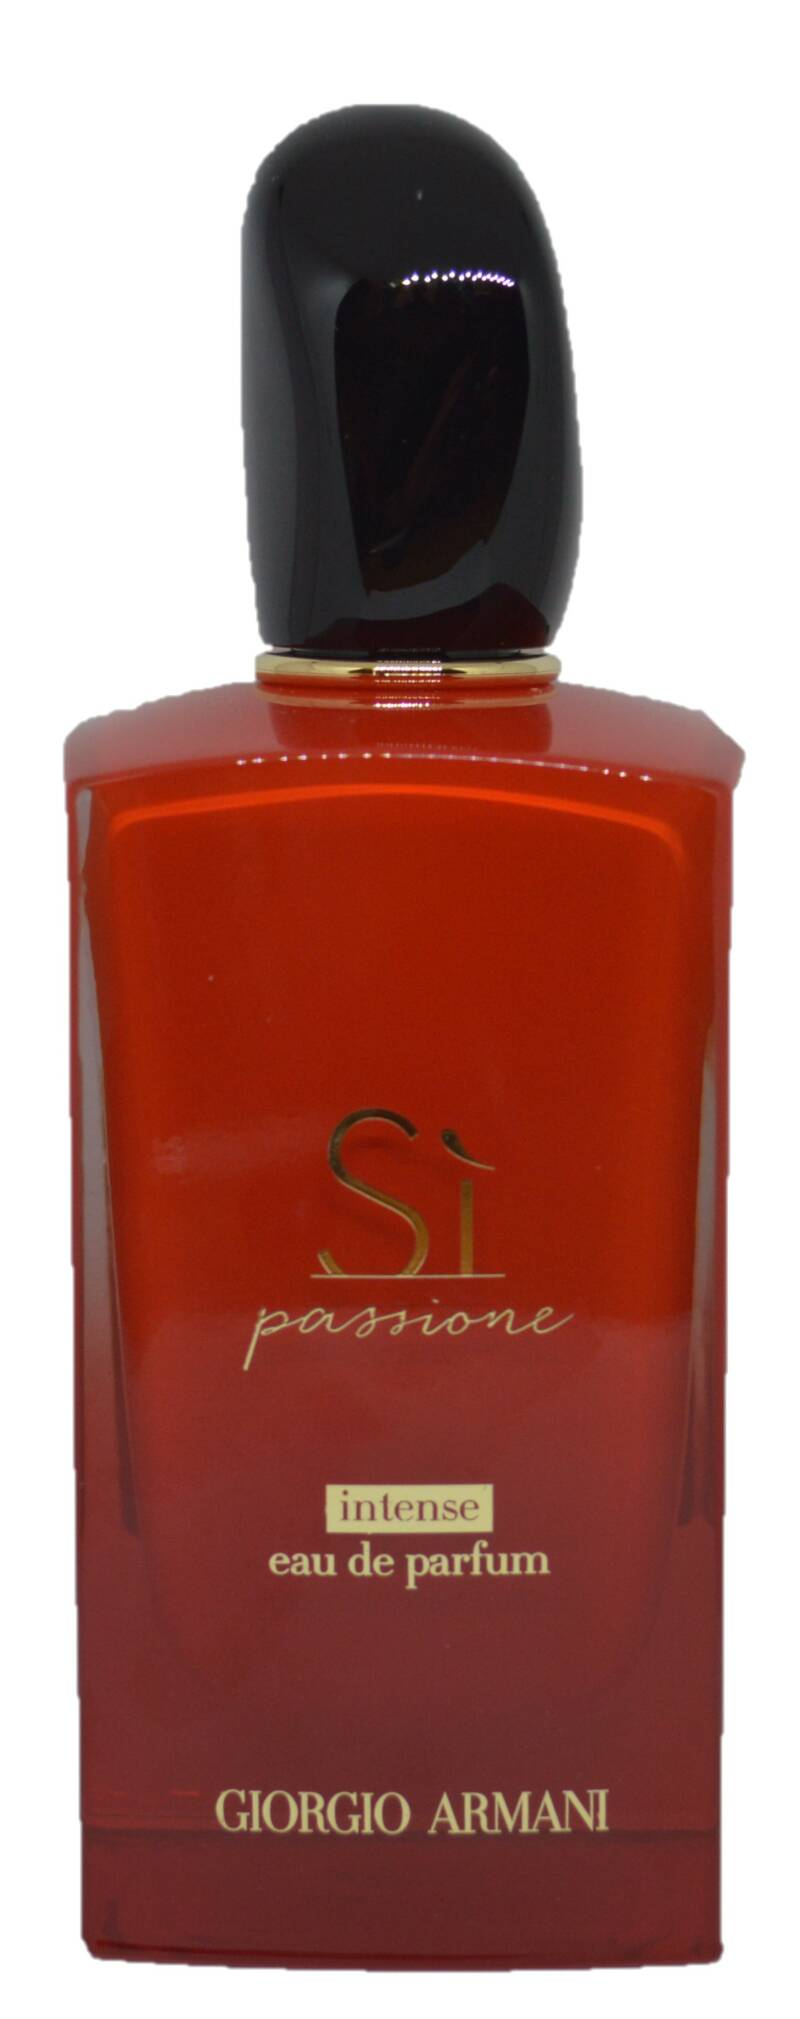 Sì Passione Intense 30ml